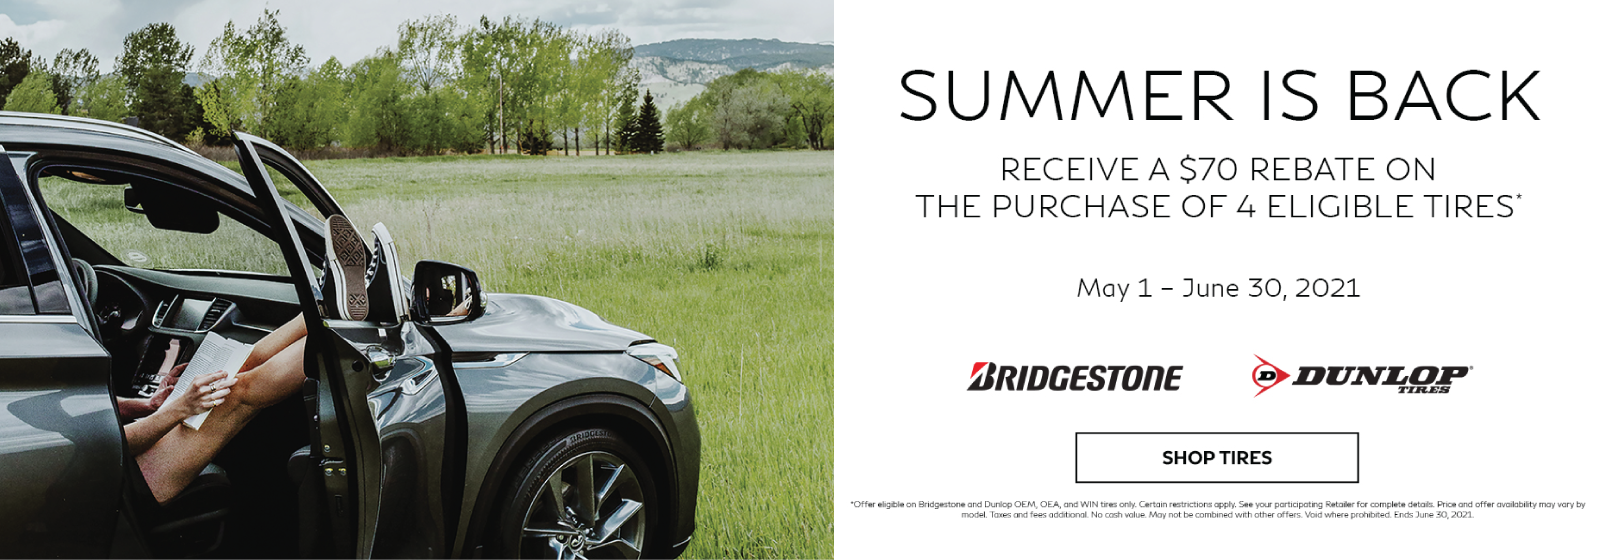 Receive a $70 rebate on the purchase of 4 eligible tires. Offer ends June 30, 2021. See retailer for complete details.